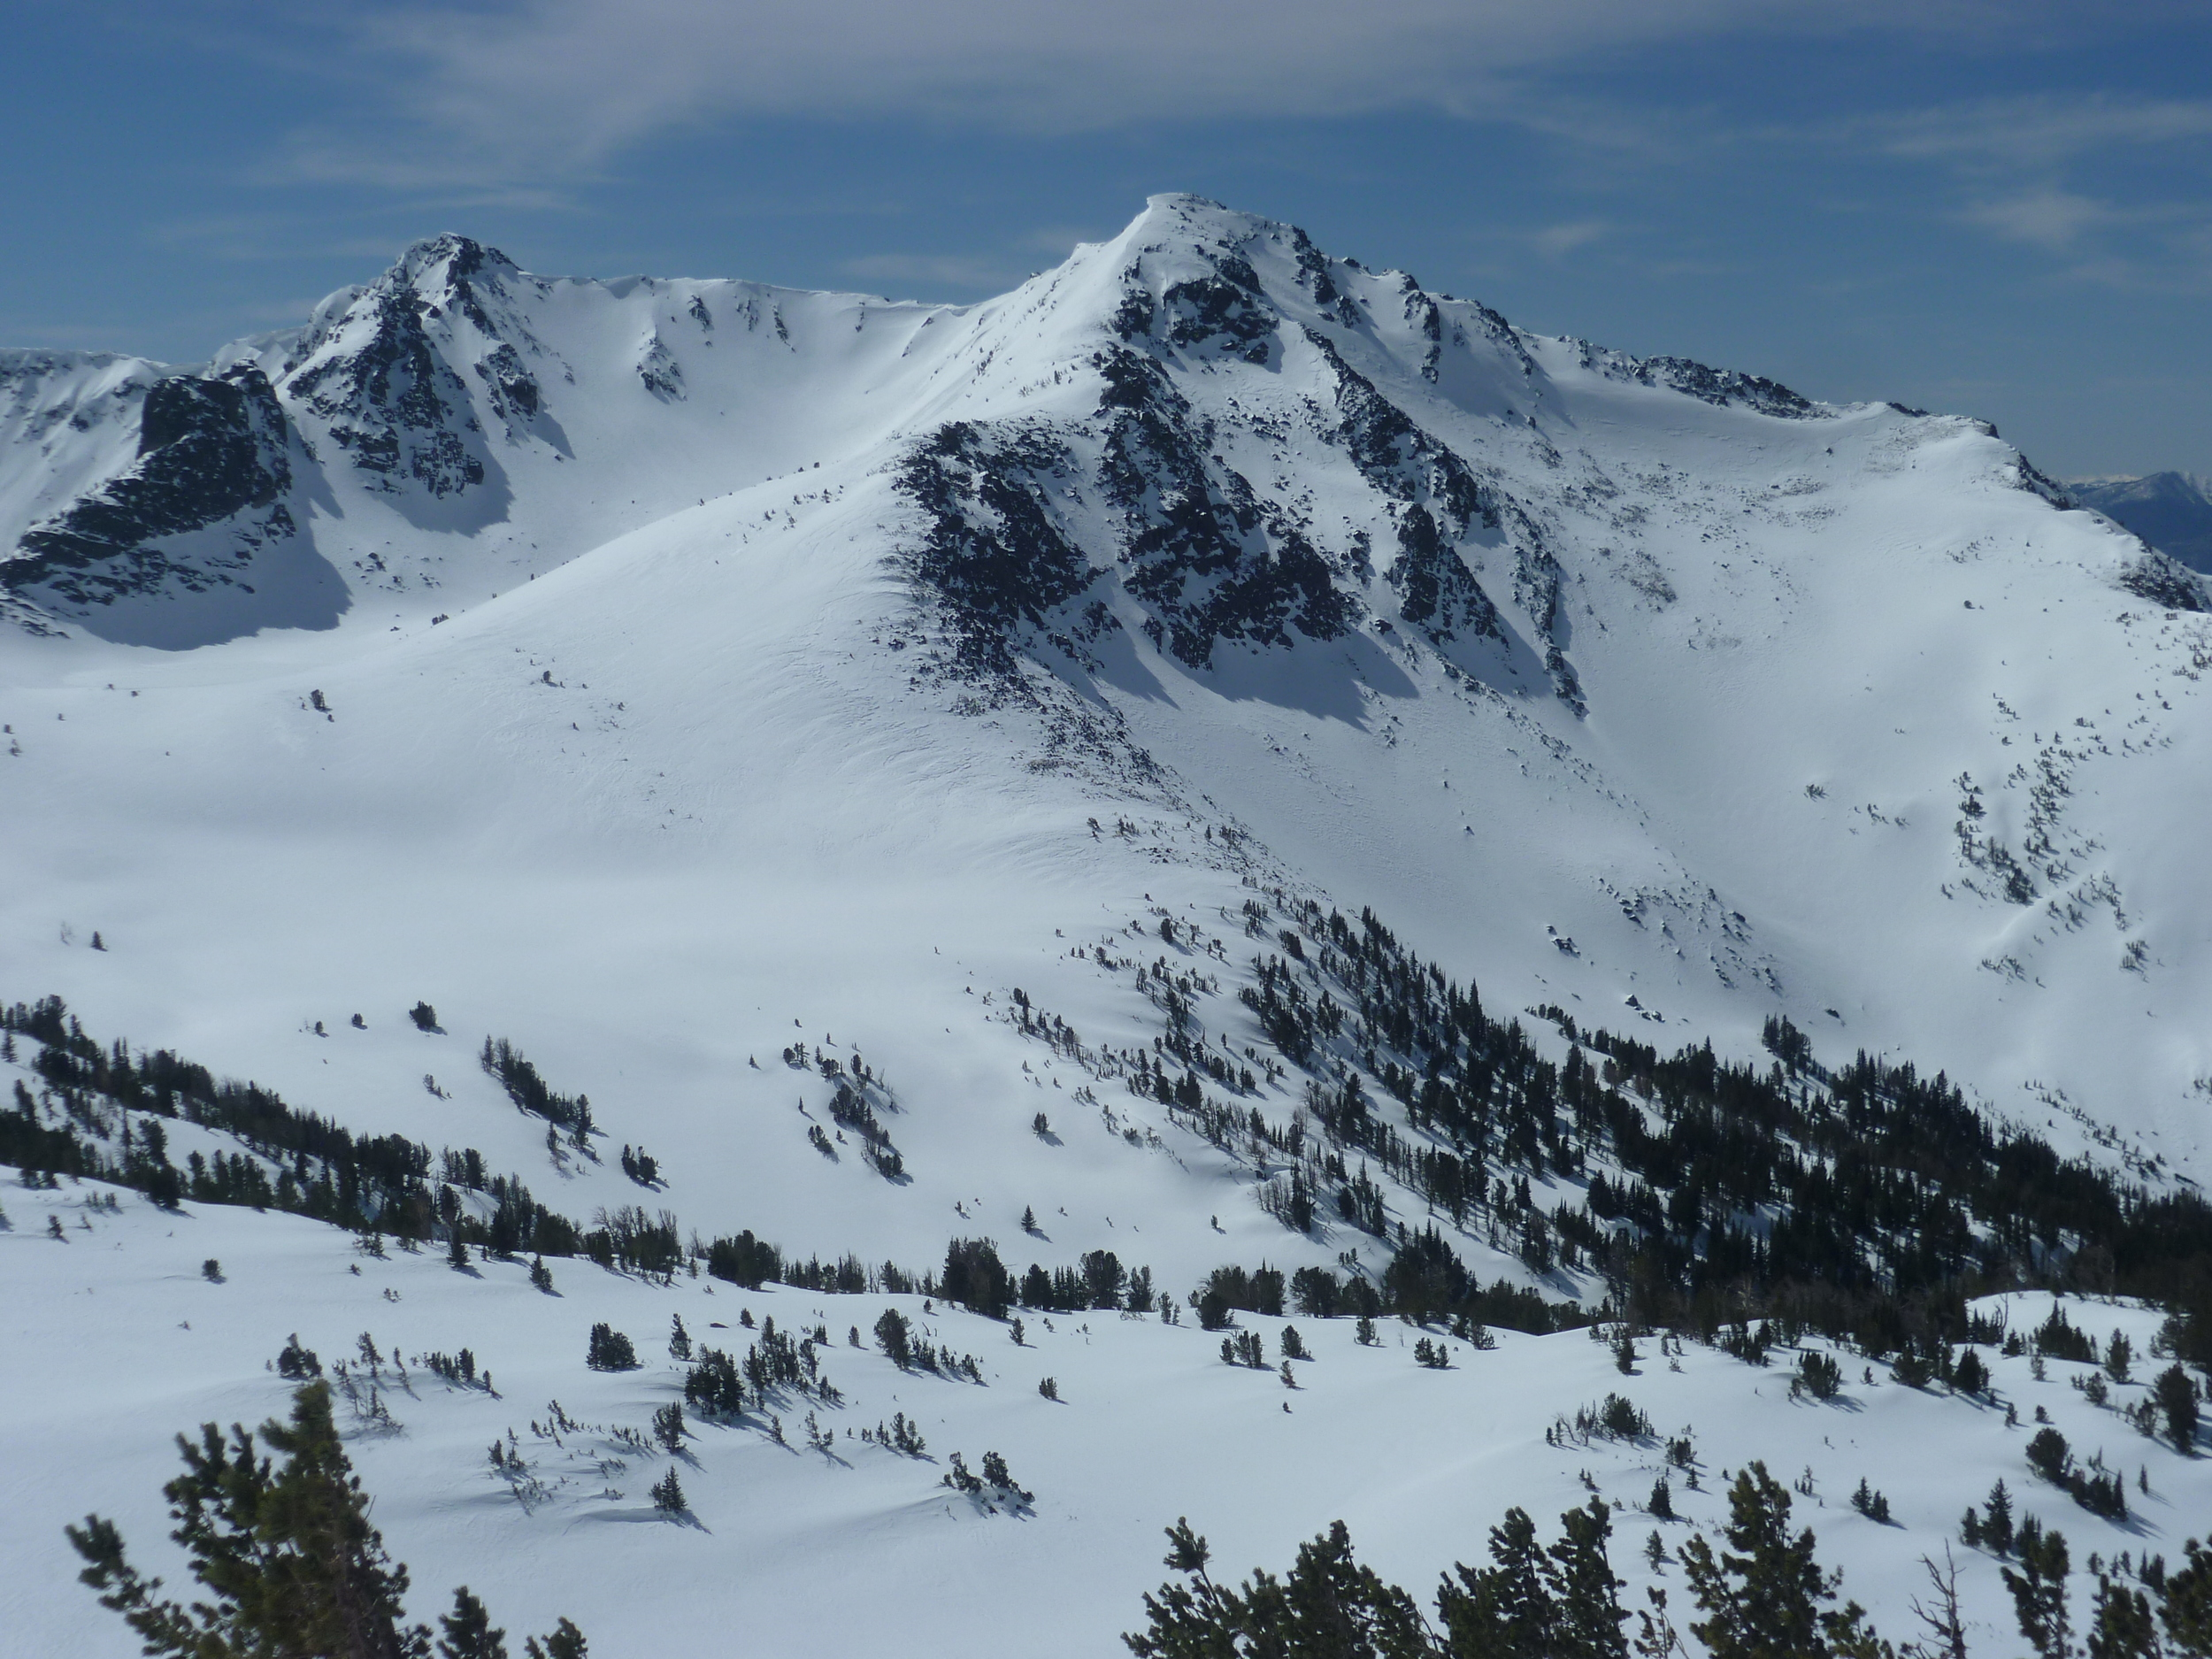 Skiing and splitboarding heaven in every direction.